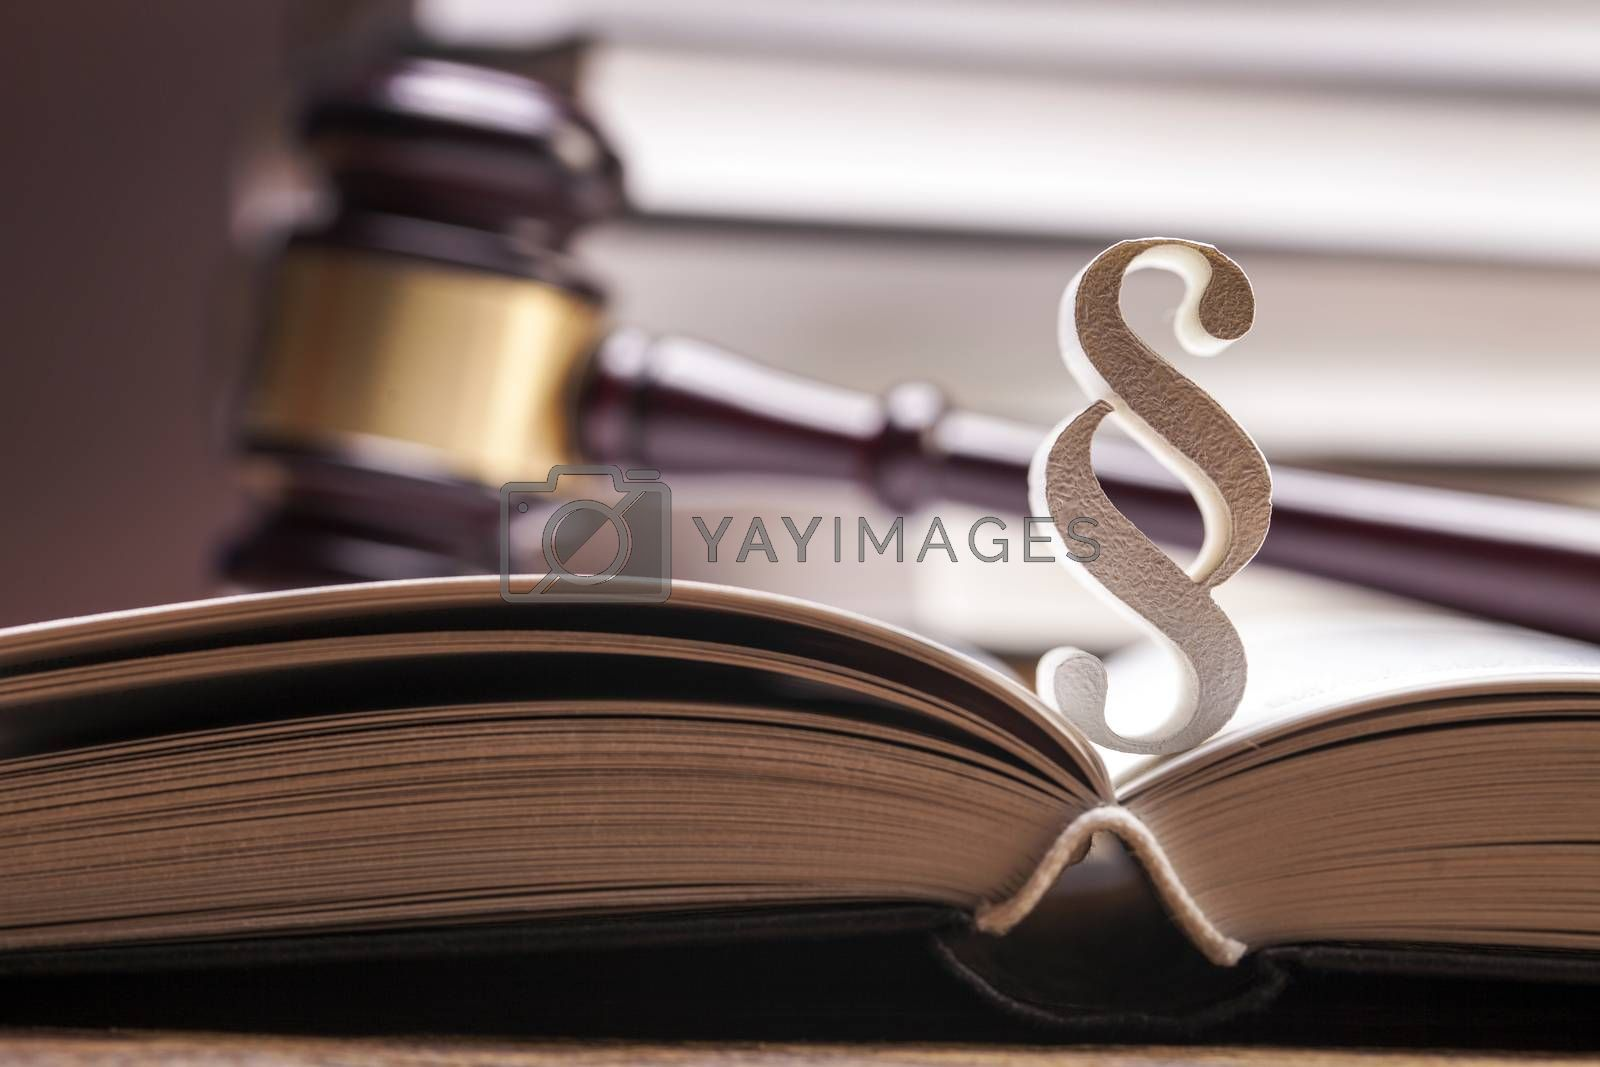 Royalty free image of Scales of justice and gavel on desk with dark background by fikmik